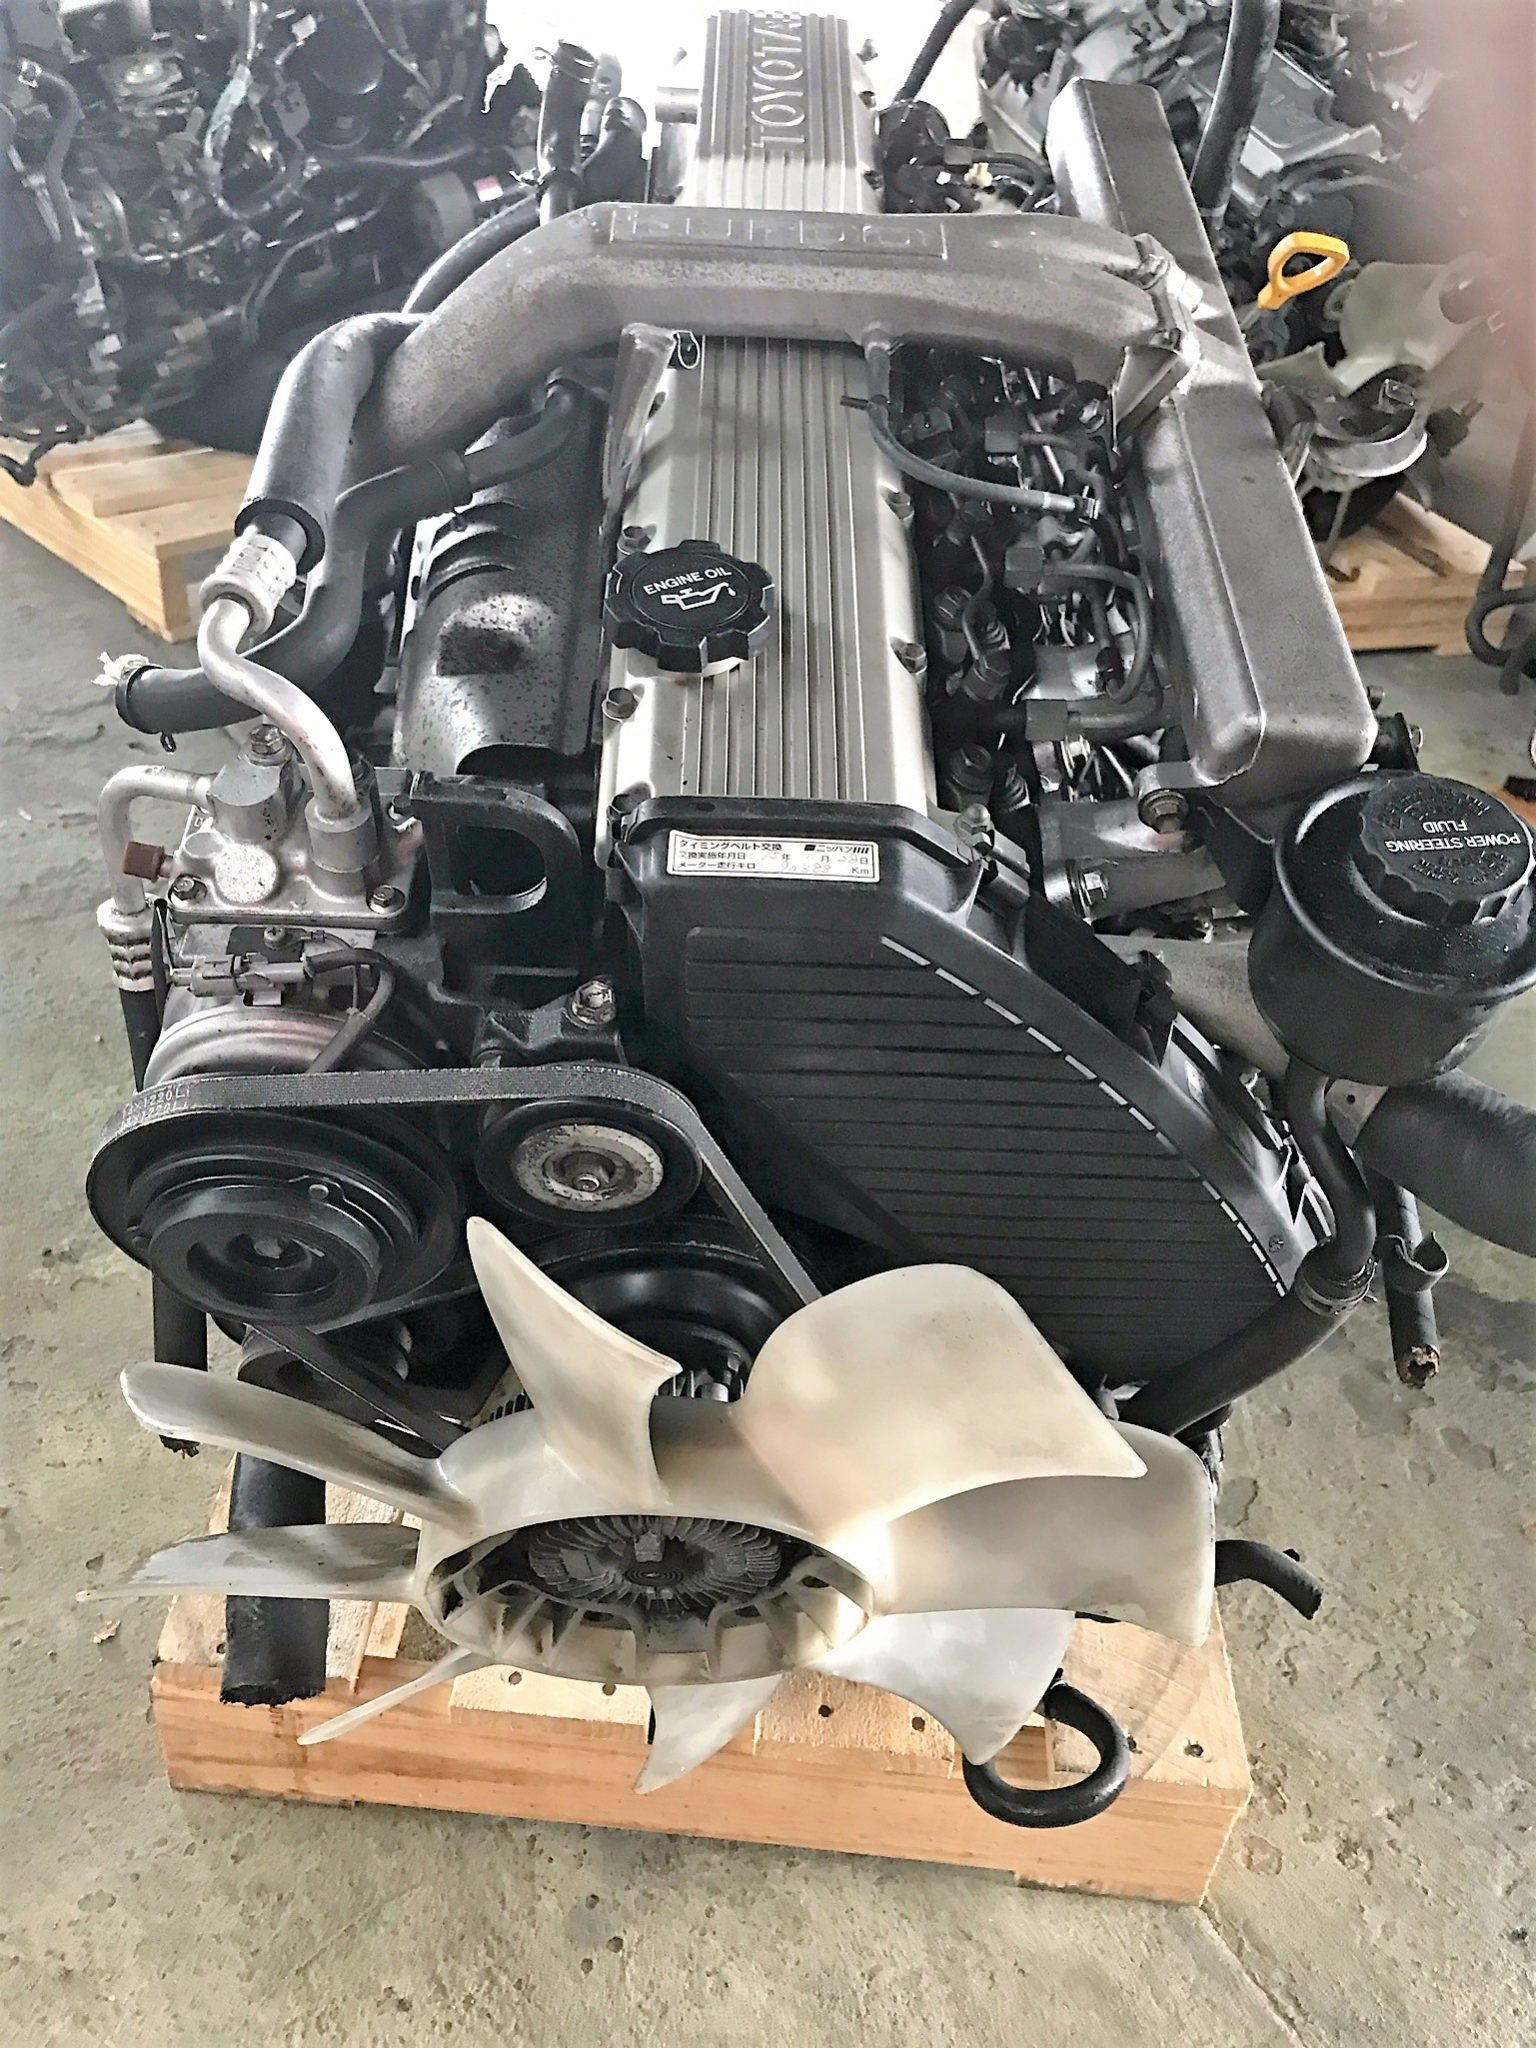 1hd t toyota landcruiser engine japanese engine imports for Engine motors for sale